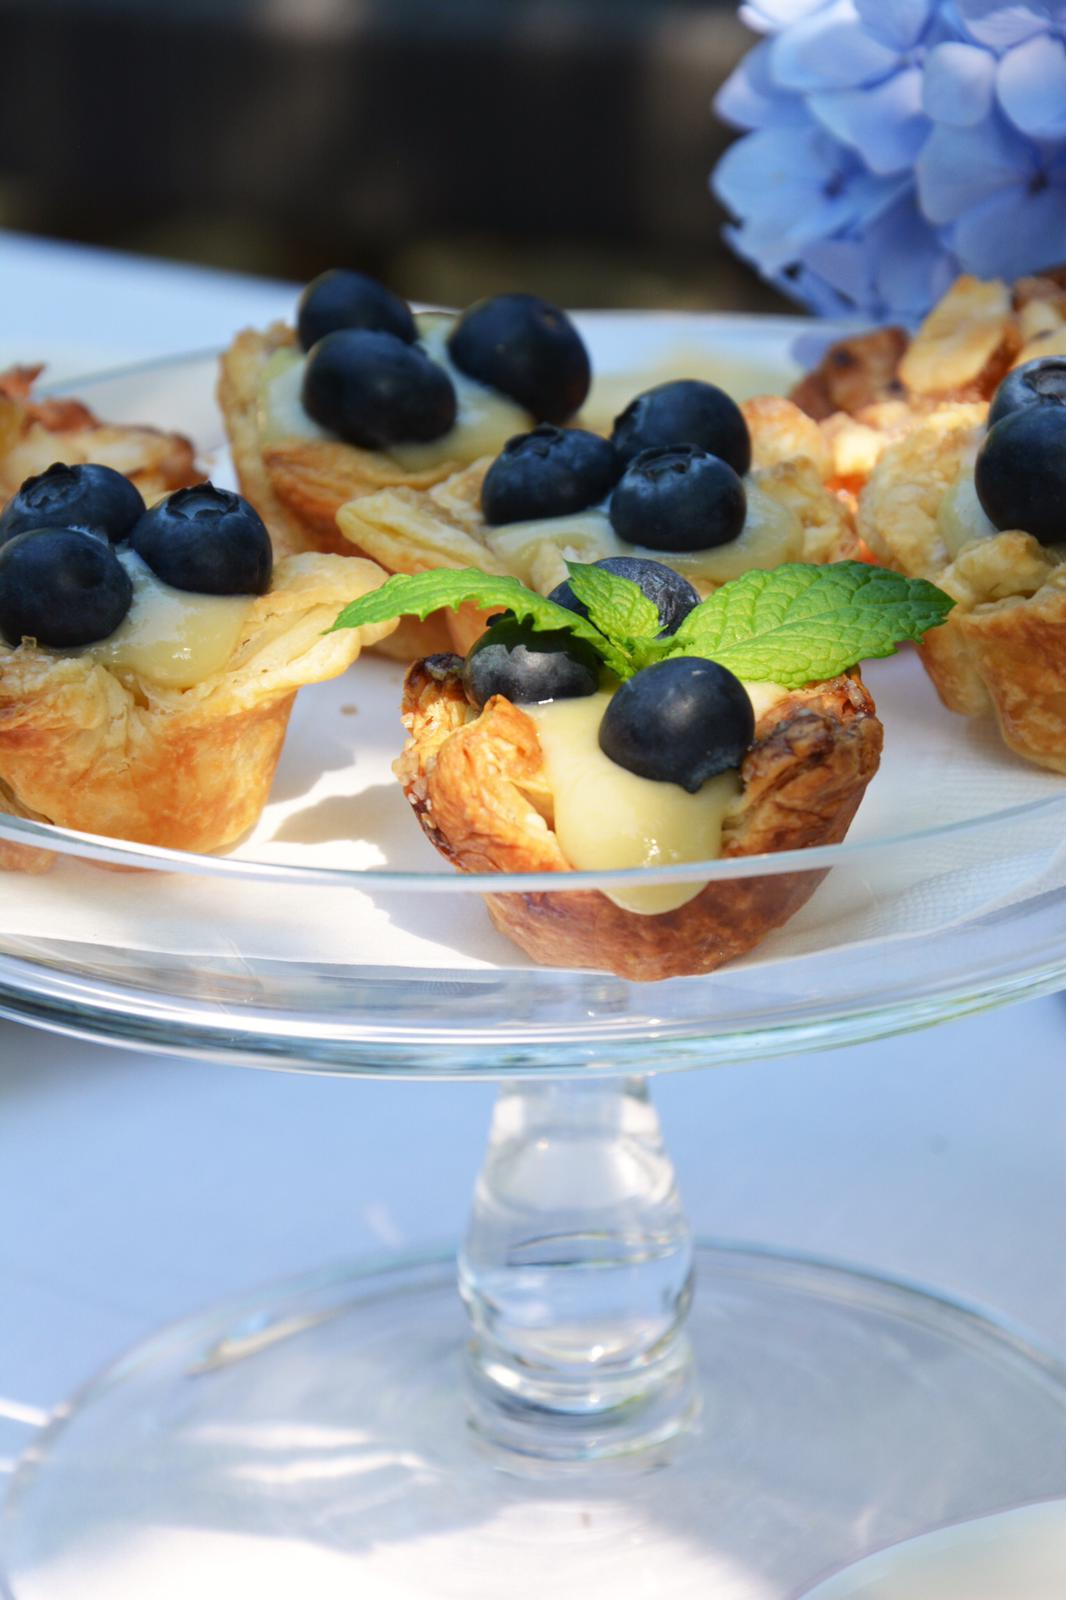 Blueberry Tarts with Lemon & Lavender Pastry Cream